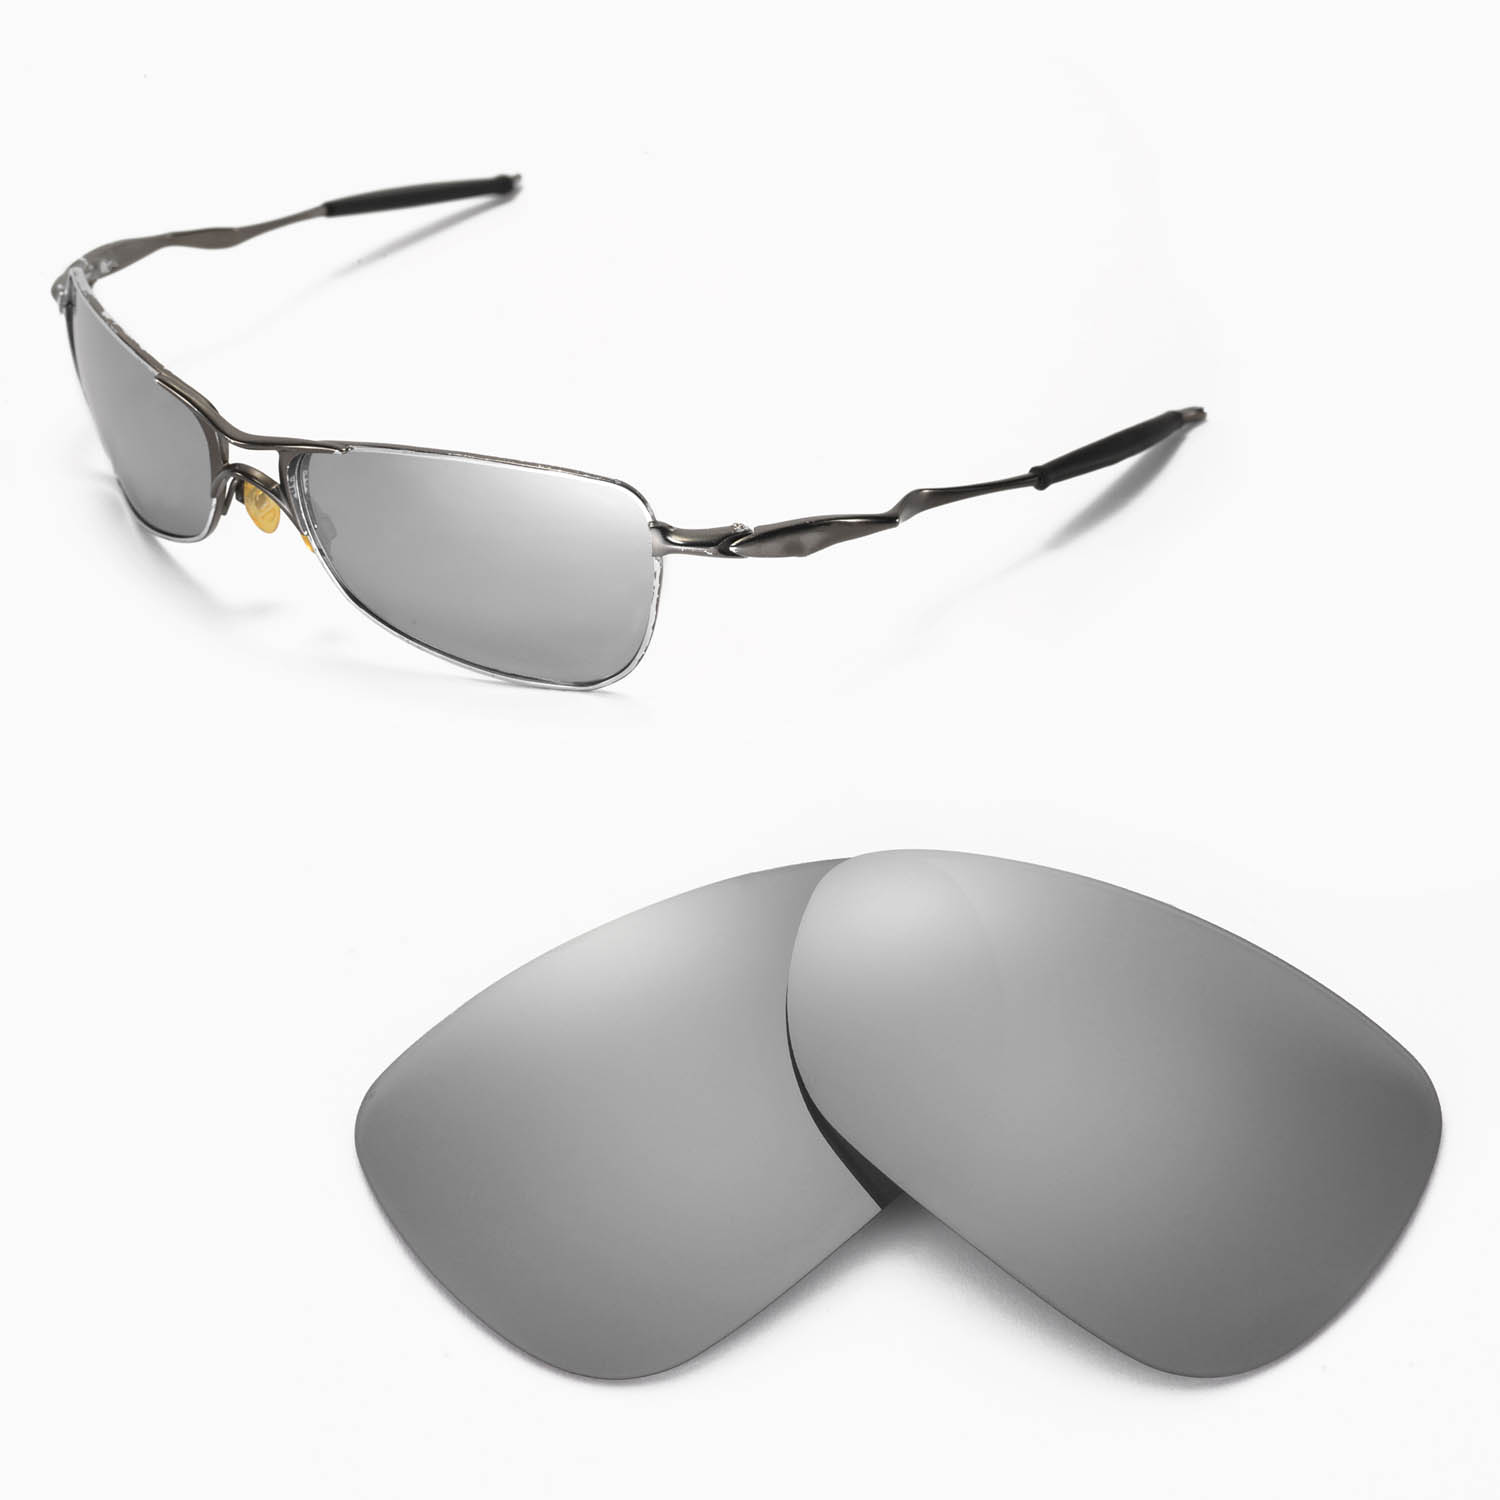 be94df78db6c5 Details about New WL Polarized Titanium Replacement Lenses For Oakley  Crosshair 1.0 Sunglasses